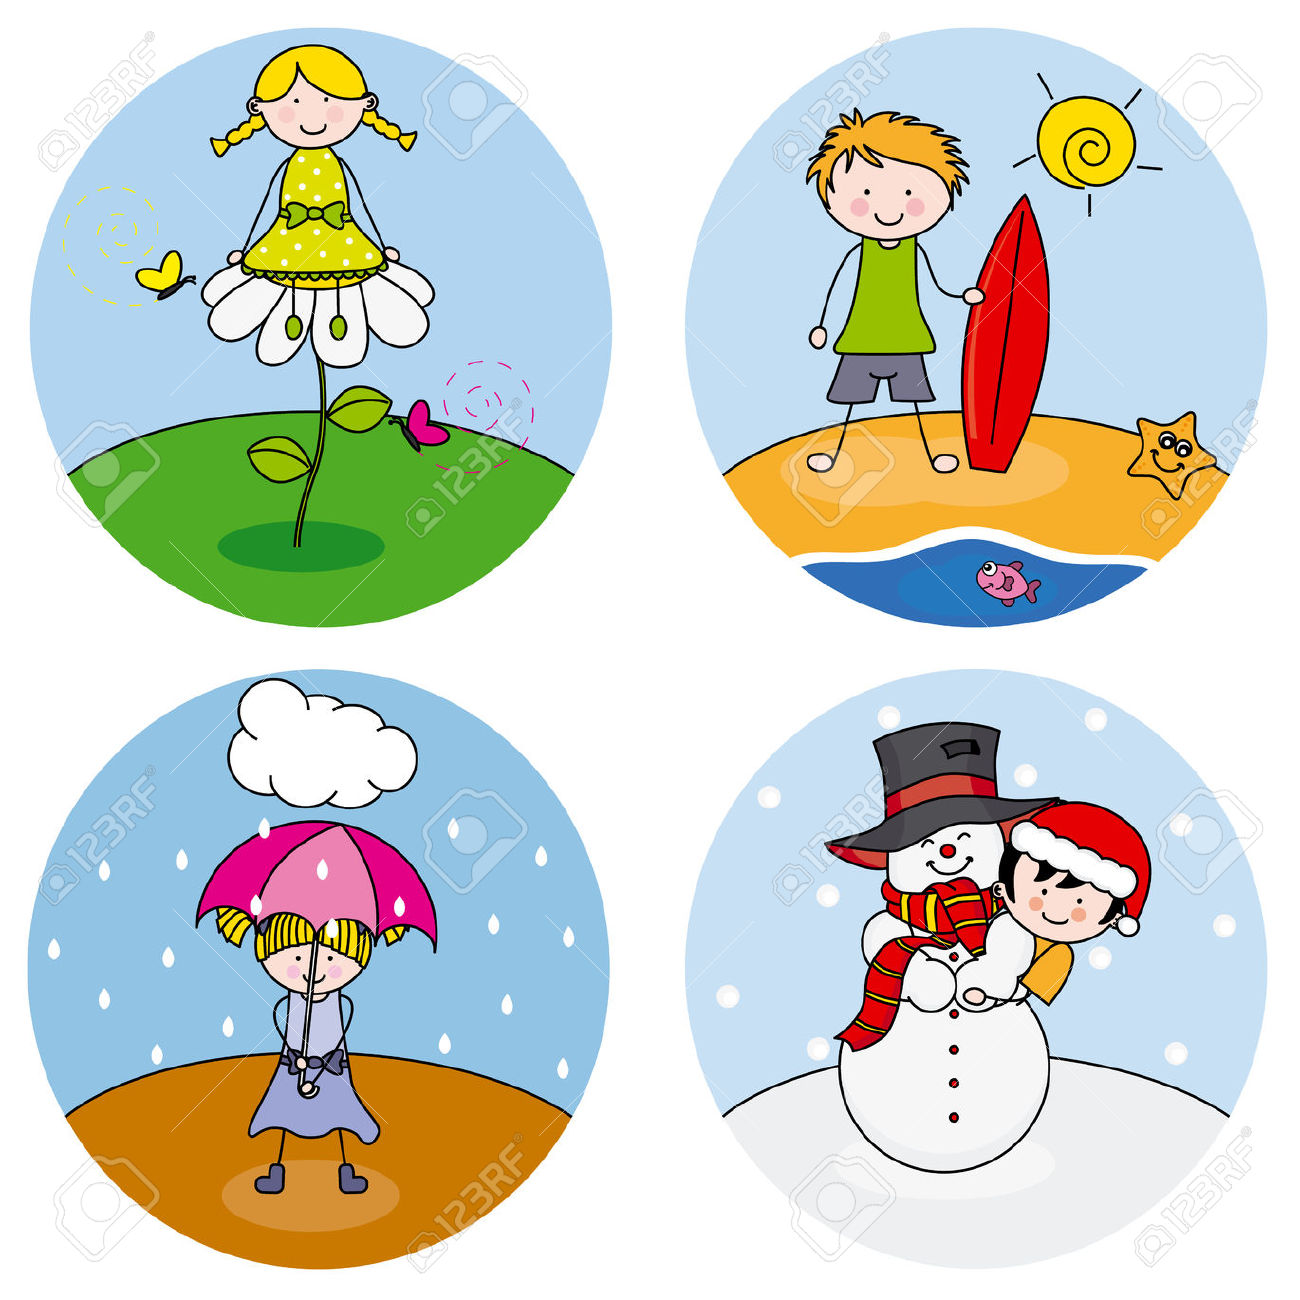 4 seasons images clipart png royalty free library Free Four Seasons Cliparts, Download Free Clip Art, Free Clip Art on ... png royalty free library